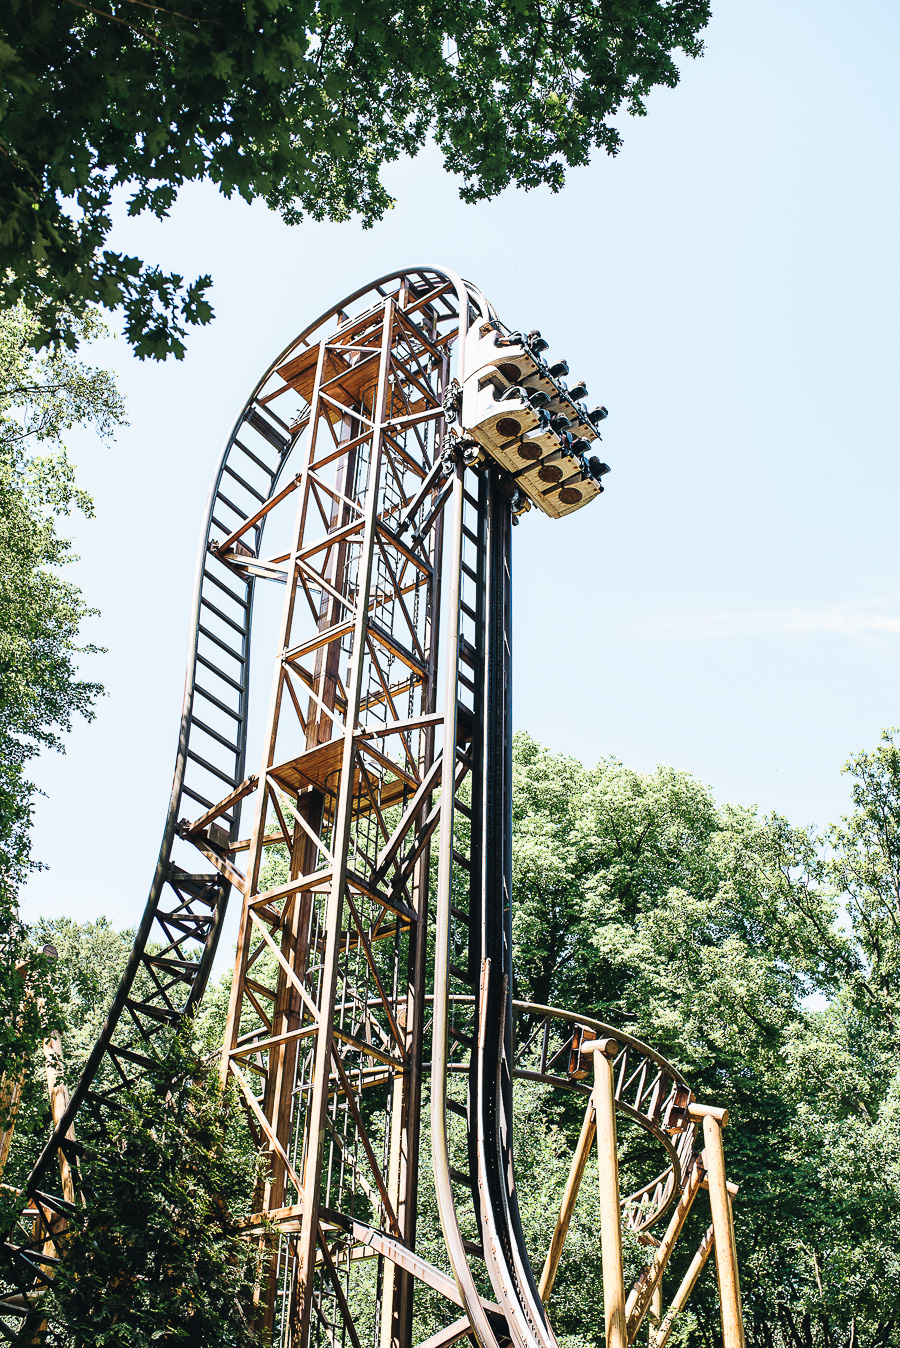 Can you believe my 10 year old Daughter went on this?! It goes upside down and was far too scary for me!